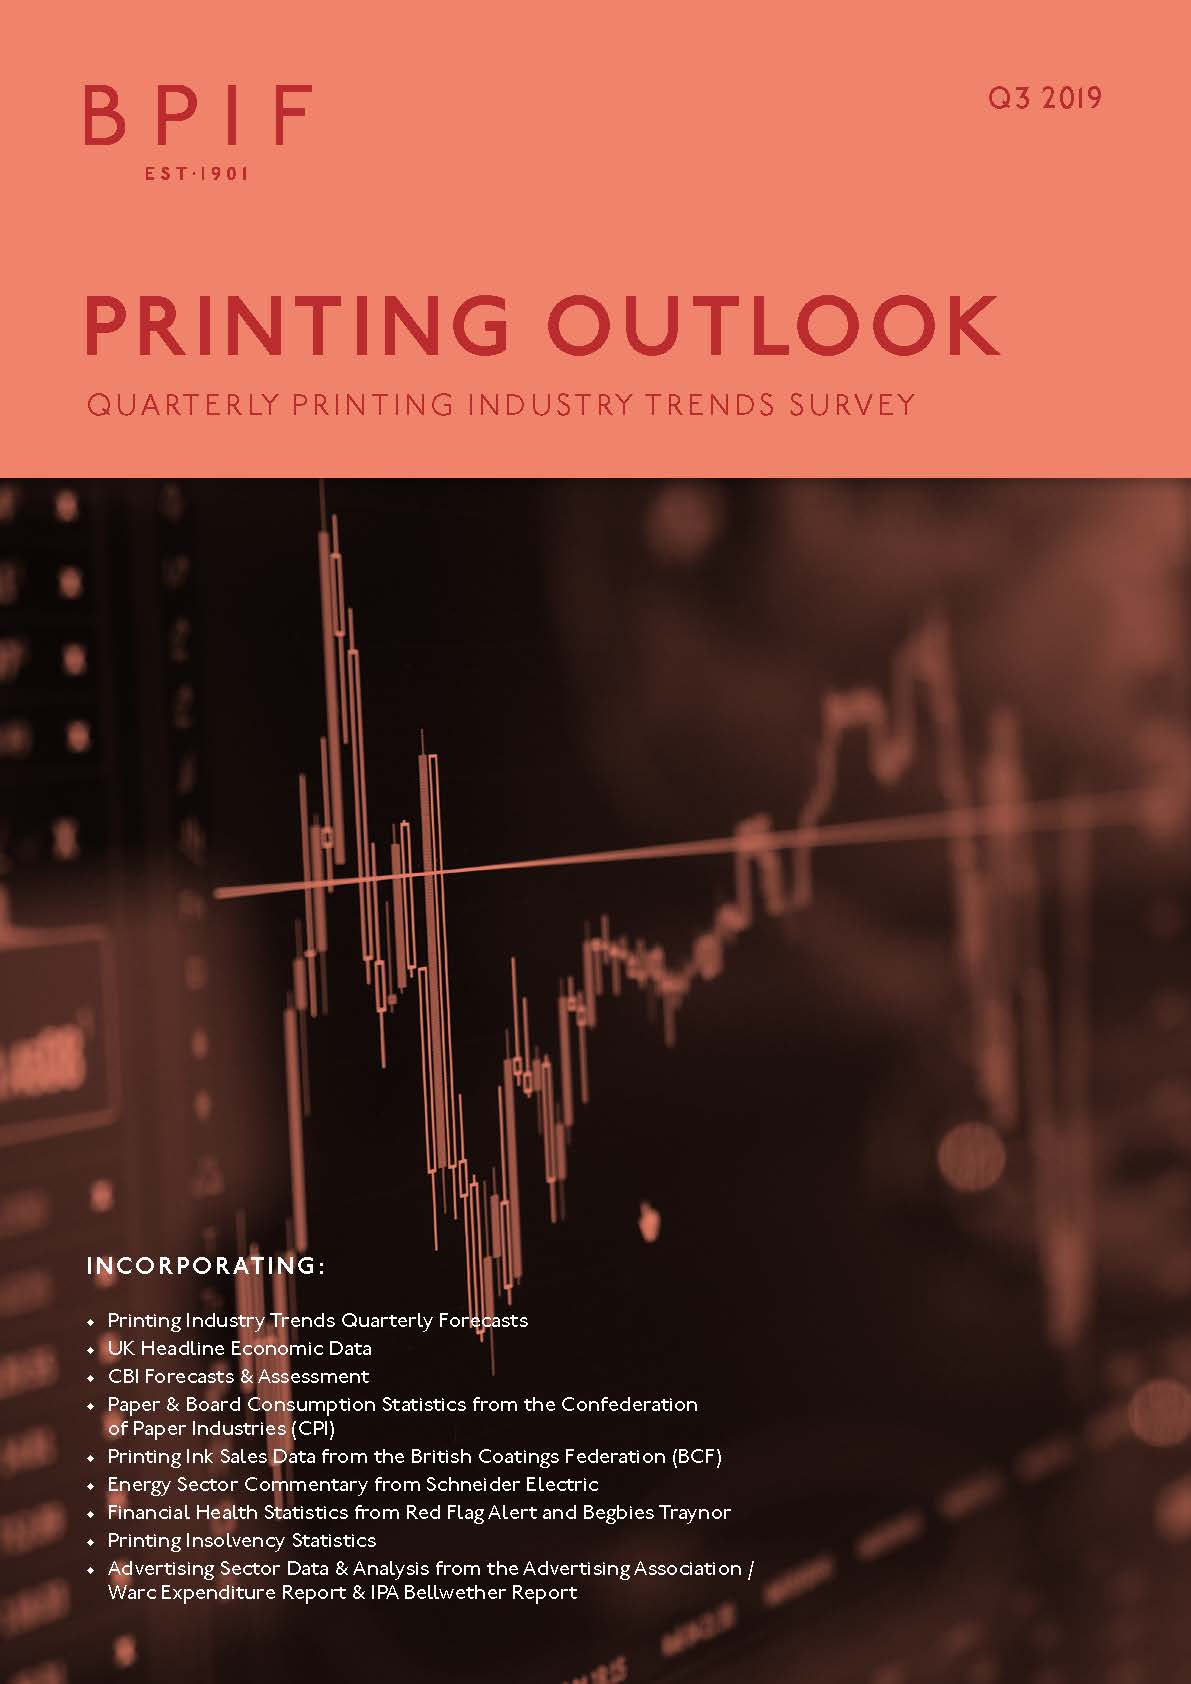 BPIF Printing Outlook Q3 2019